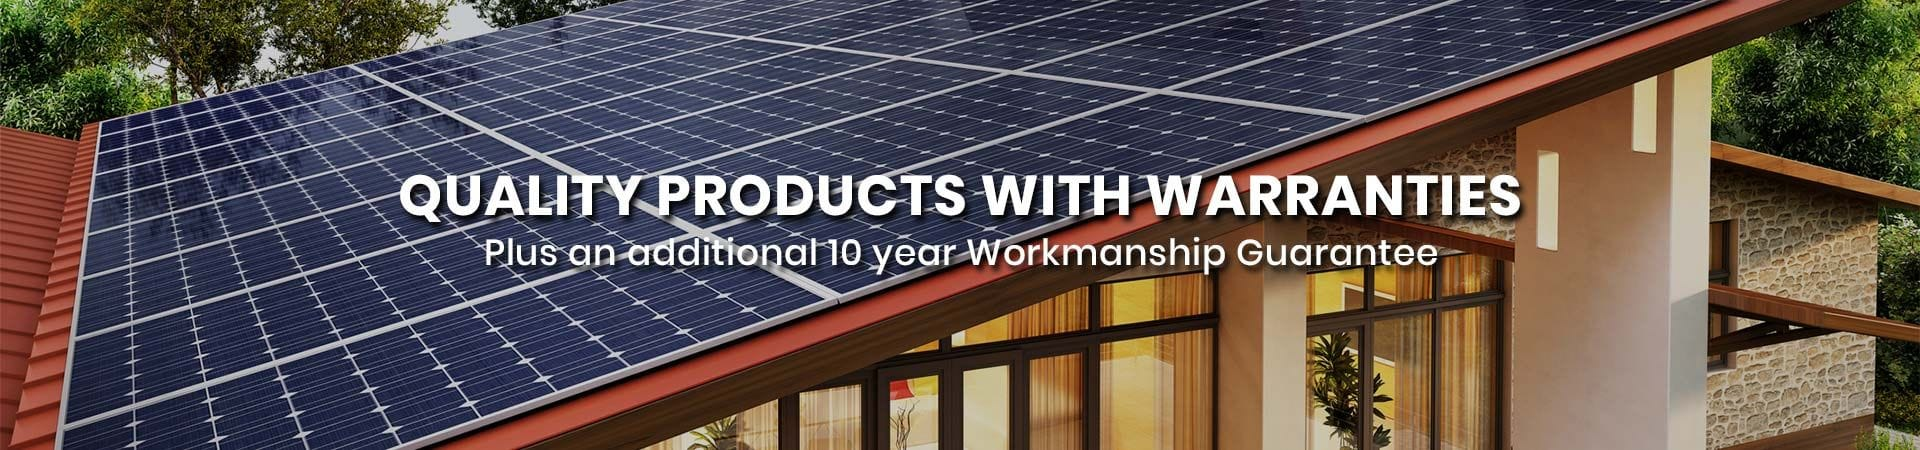 Commercial Solar Panels and Solar Systems QLD NSW